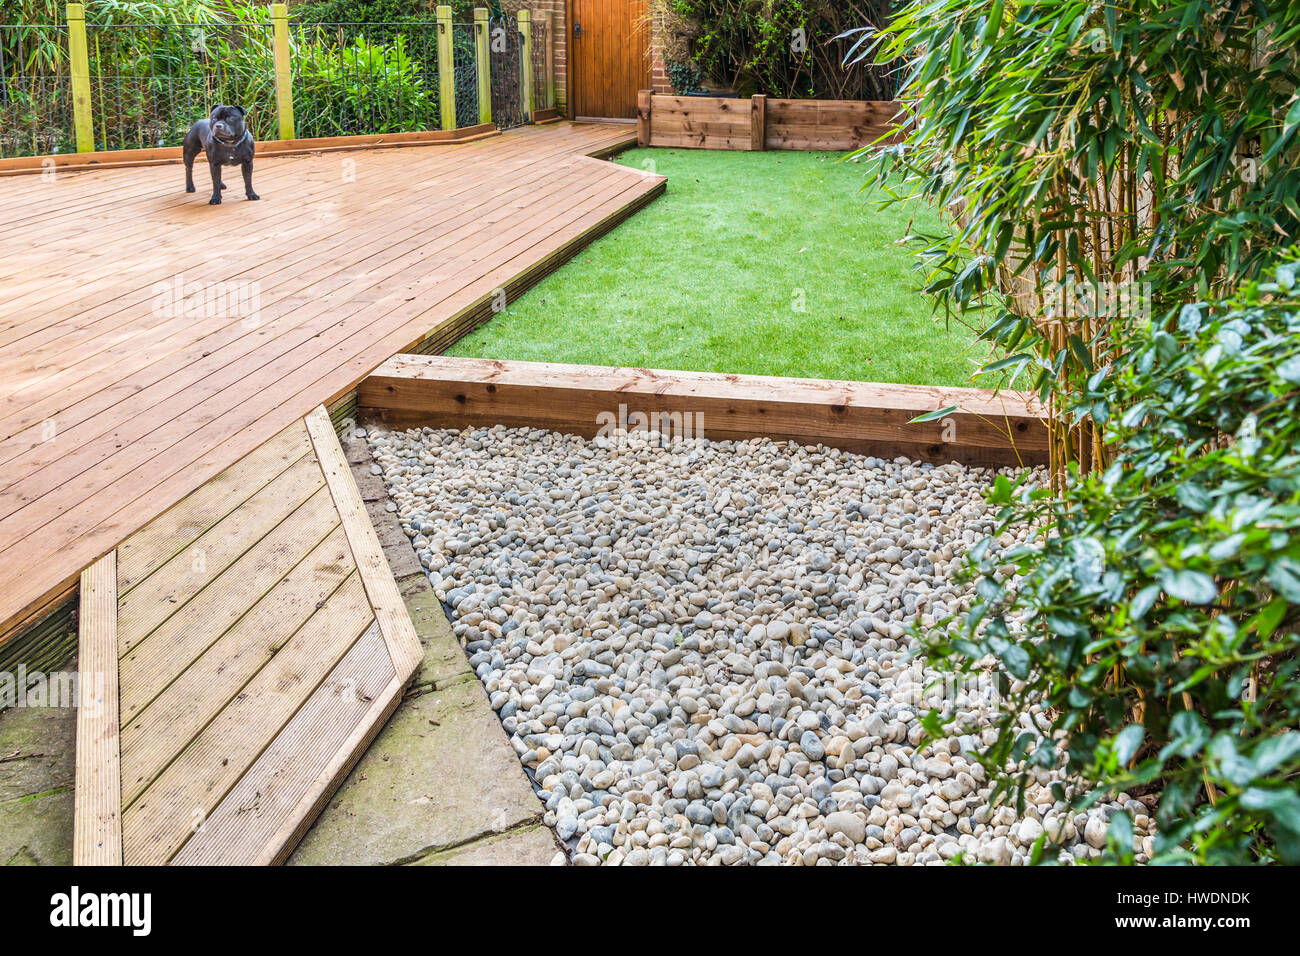 A Section Of A Residntial Garden, Yard With Wooden Decking, Patio Over A Fish  Pond, A Section Of Artificial Grass And An Area Of Stone Pebble. There I